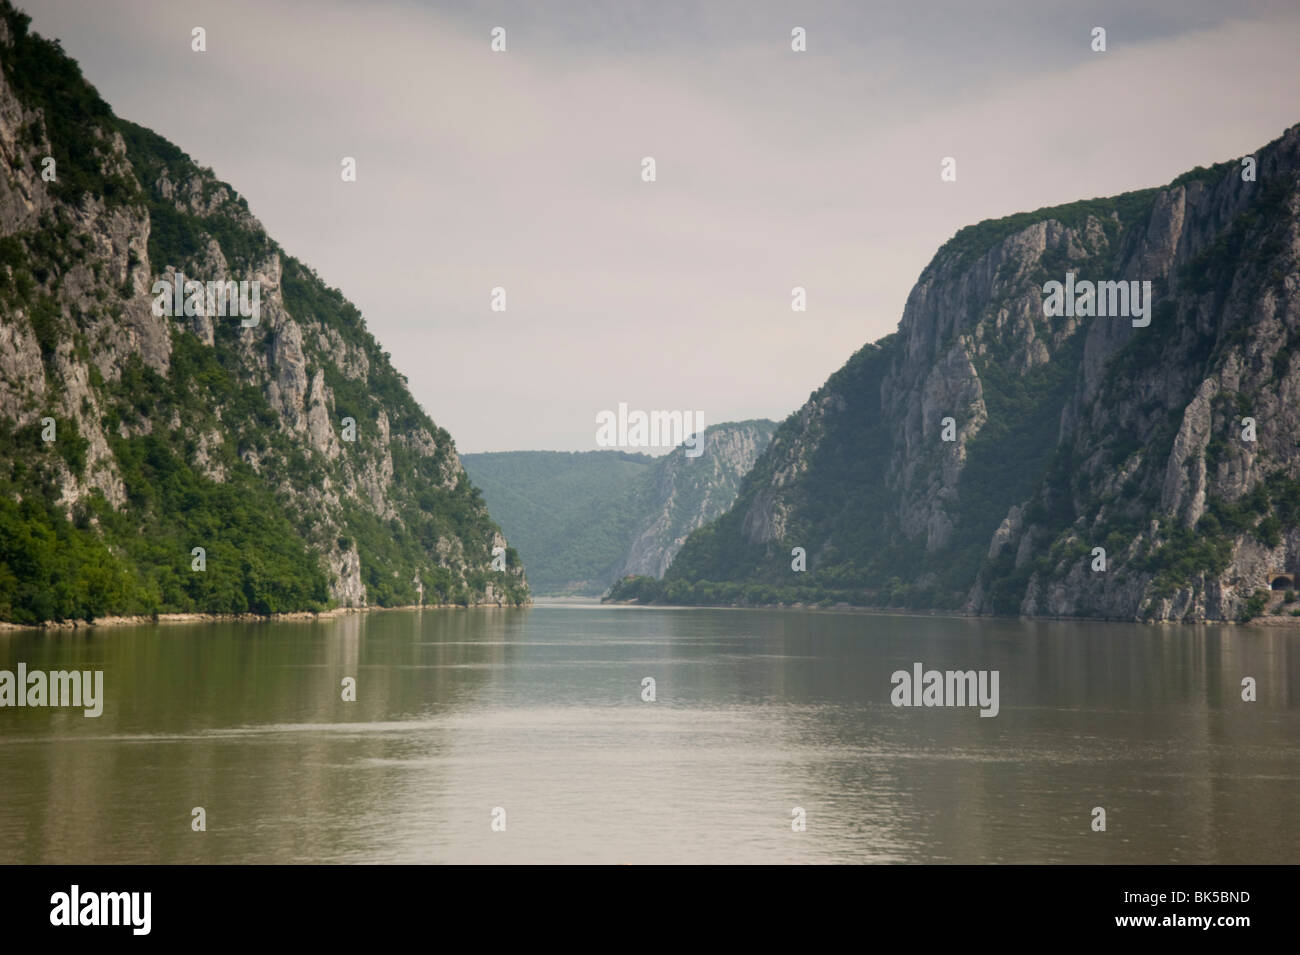 The Danube River flowing through the Kazan Gorge in the Iron Gates Region between Serbia and Romania, Europe - Stock Image